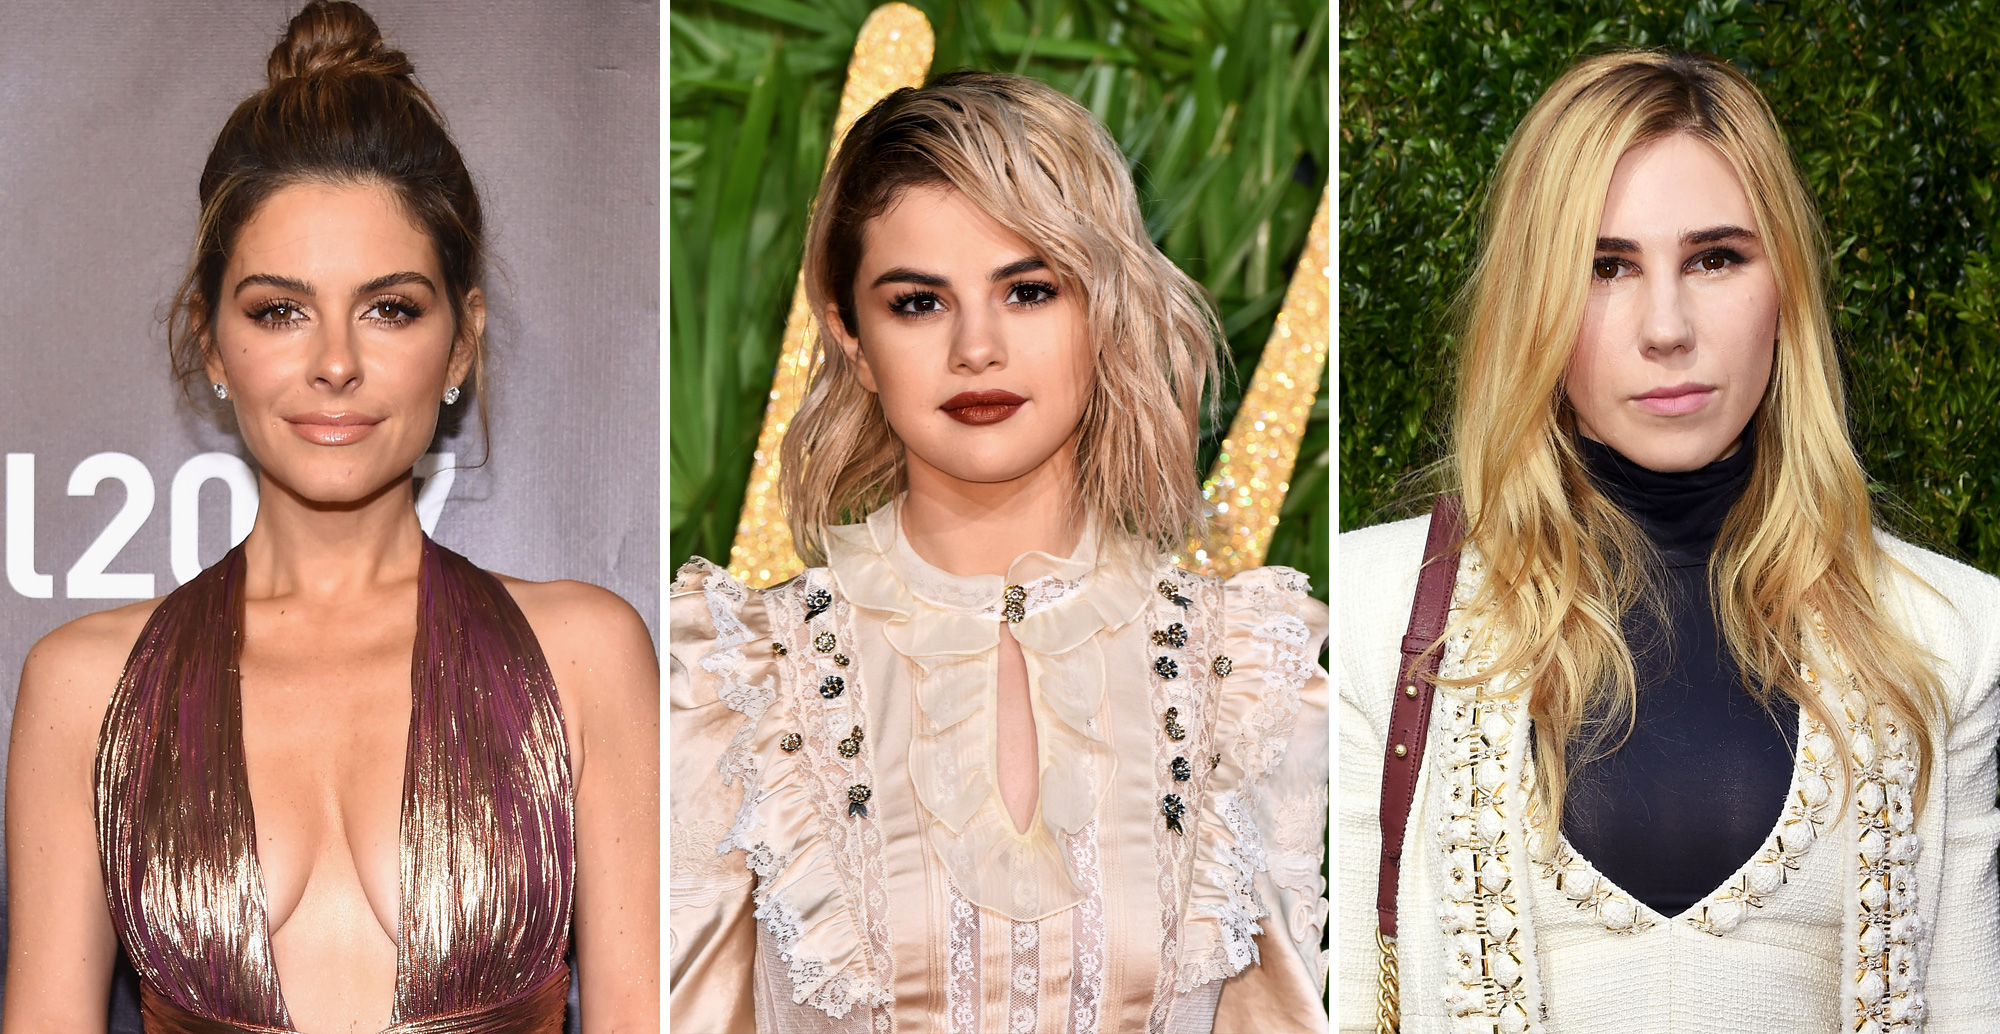 Celebs Who Revealed Health Issues in 2017